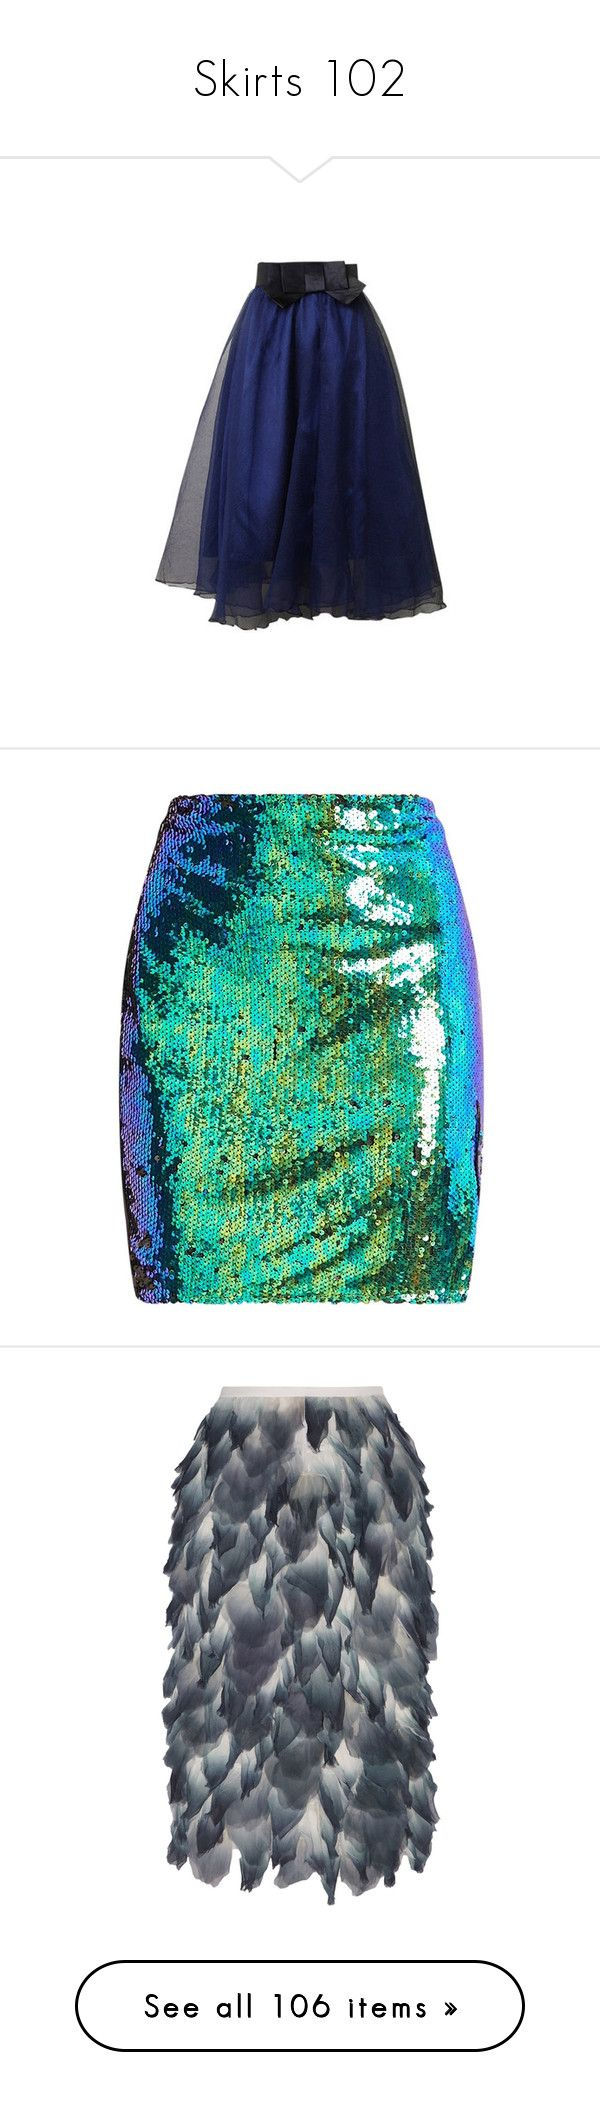 """Skirts 102"" by singlemom ❤ liked on Polyvore featuring skirts, mini skirts, bottoms, sequin mini skirt, green mini skirt, short sequin skirt, short skirts, green skirt, storm blue and mid calf skirts"